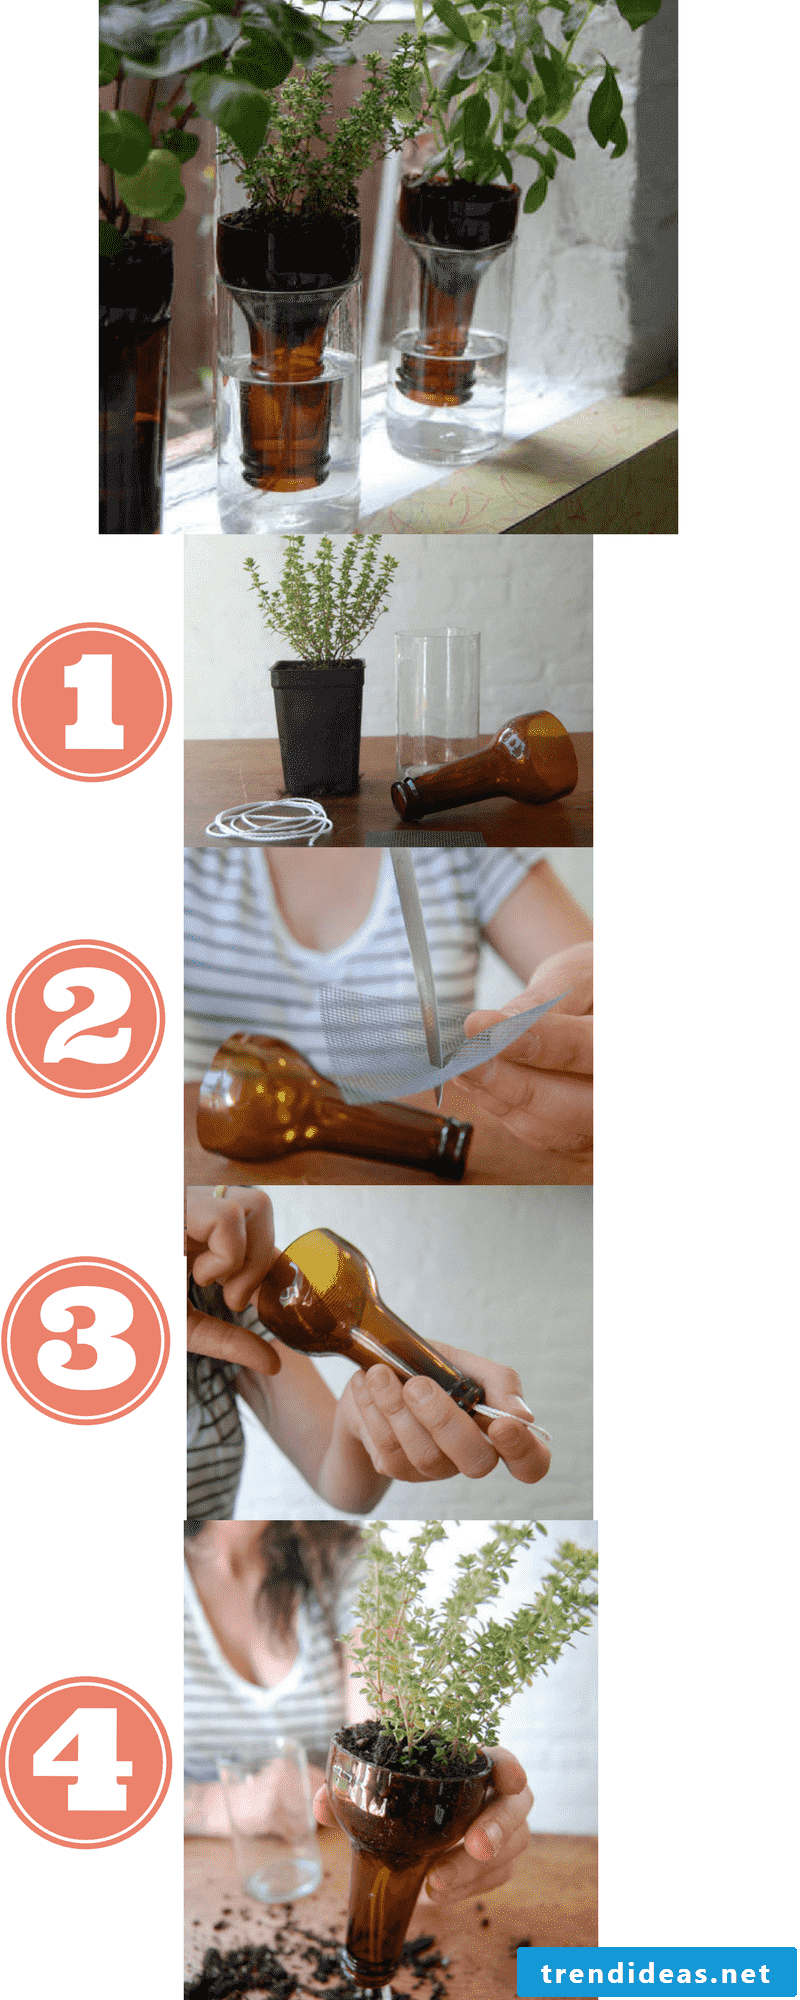 Make flower pot with plastic bag yourself